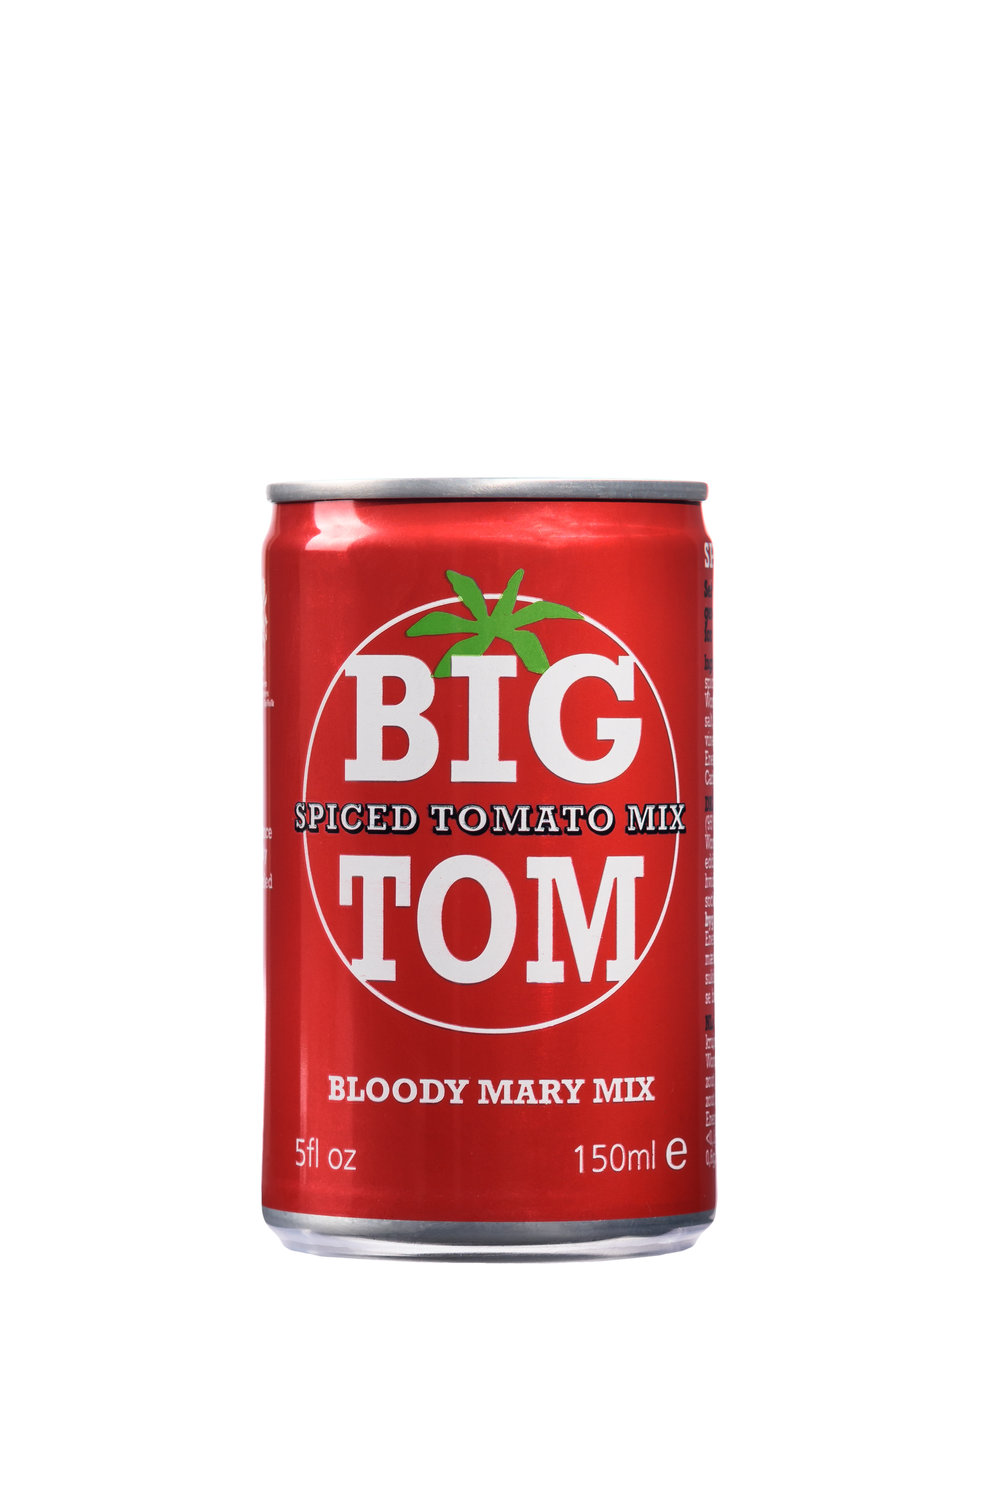 Big Tom 15cl can Front.jpg